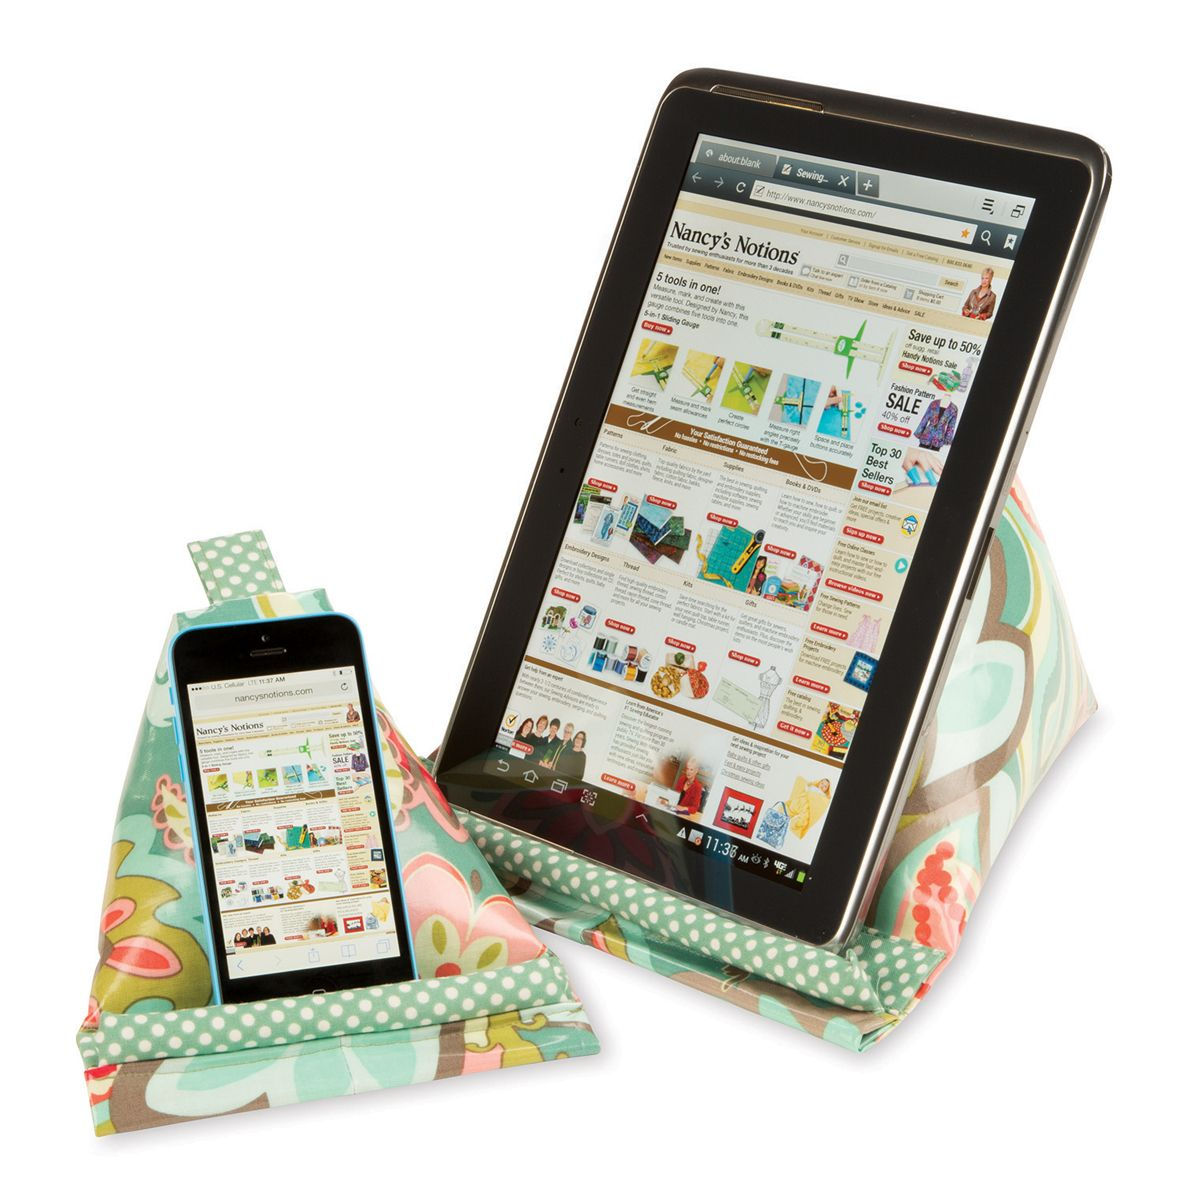 Sew an Easy iPad Pillow or Tablet Stand | Nancy zieman, iPad and ...